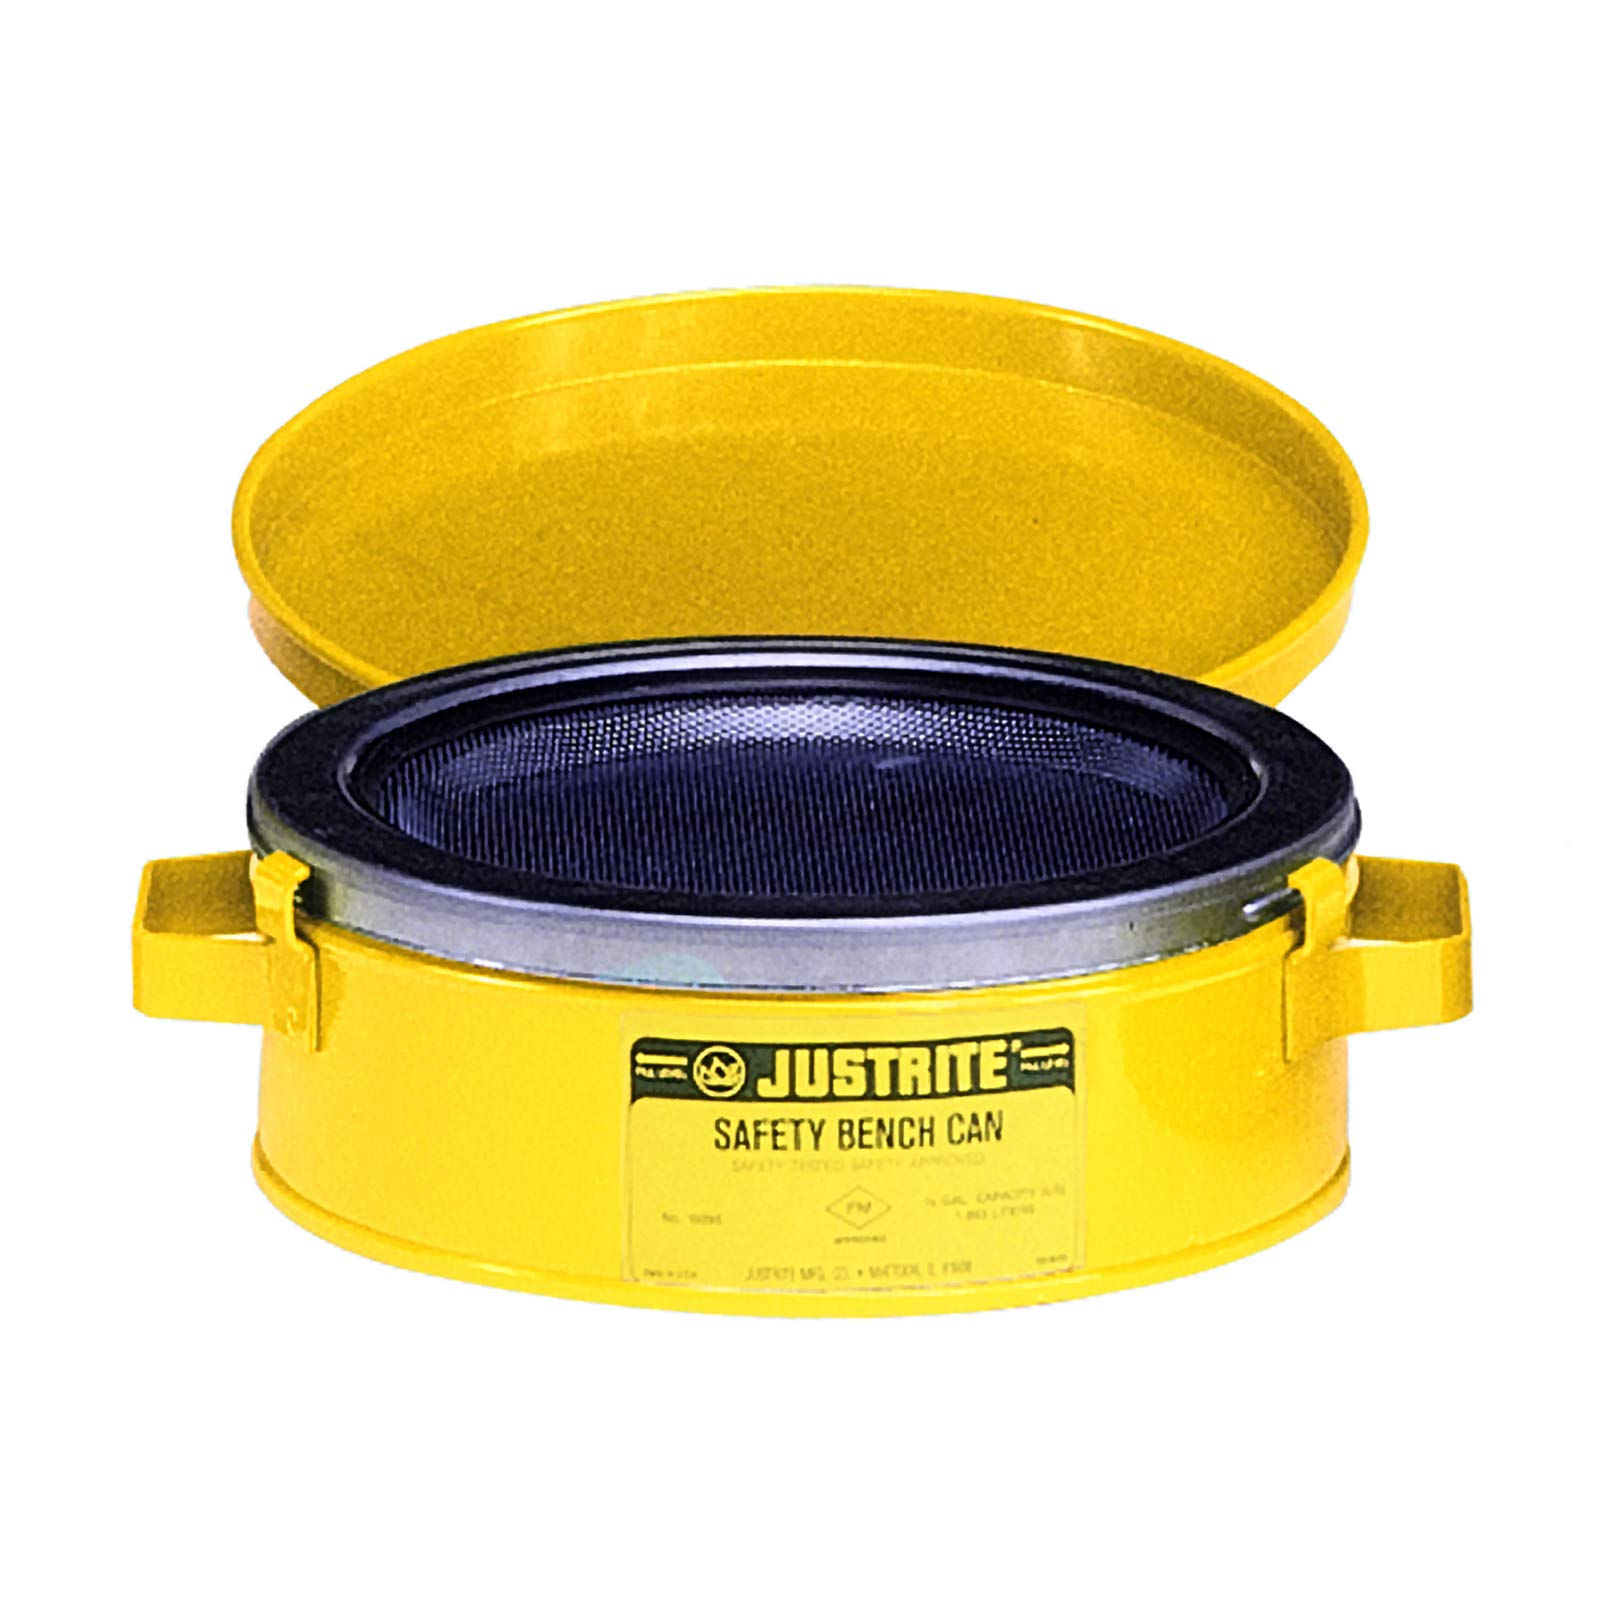 Justrite 10291 Bench Can, 2 Qt, Yellow